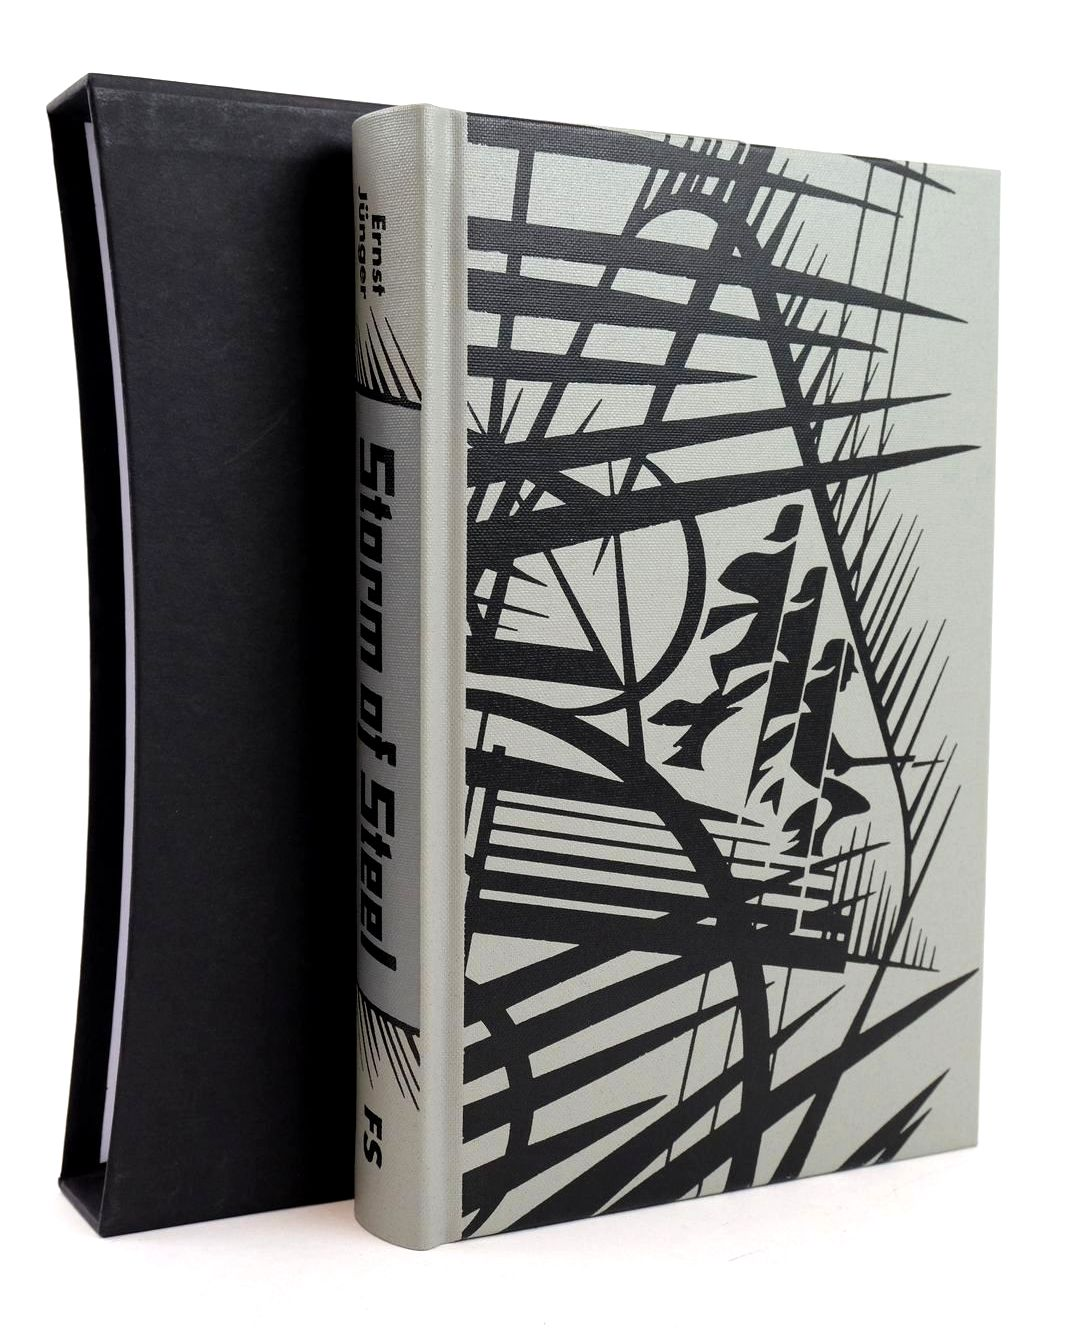 Photo of STORM OF STEEL written by Junger, Ernst illustrated by Gower, Neil published by Folio Society (STOCK CODE: 1318871)  for sale by Stella & Rose's Books